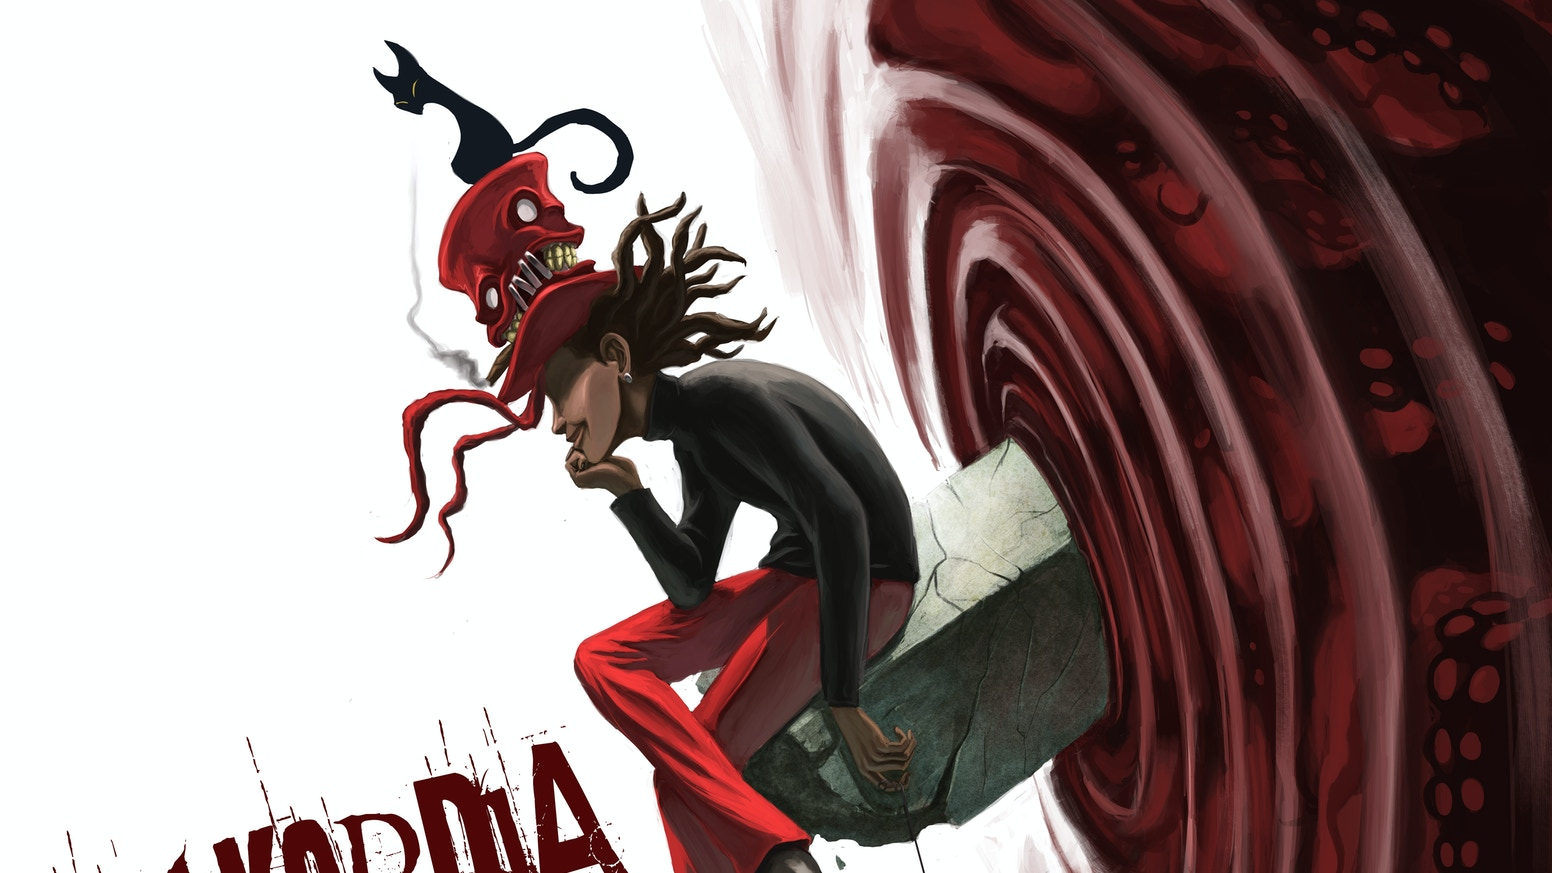 Diskordia is an ongoing surreal fantasy webcomic. The Kickstarter for book 2 is live! You can also get book 1. Link below.